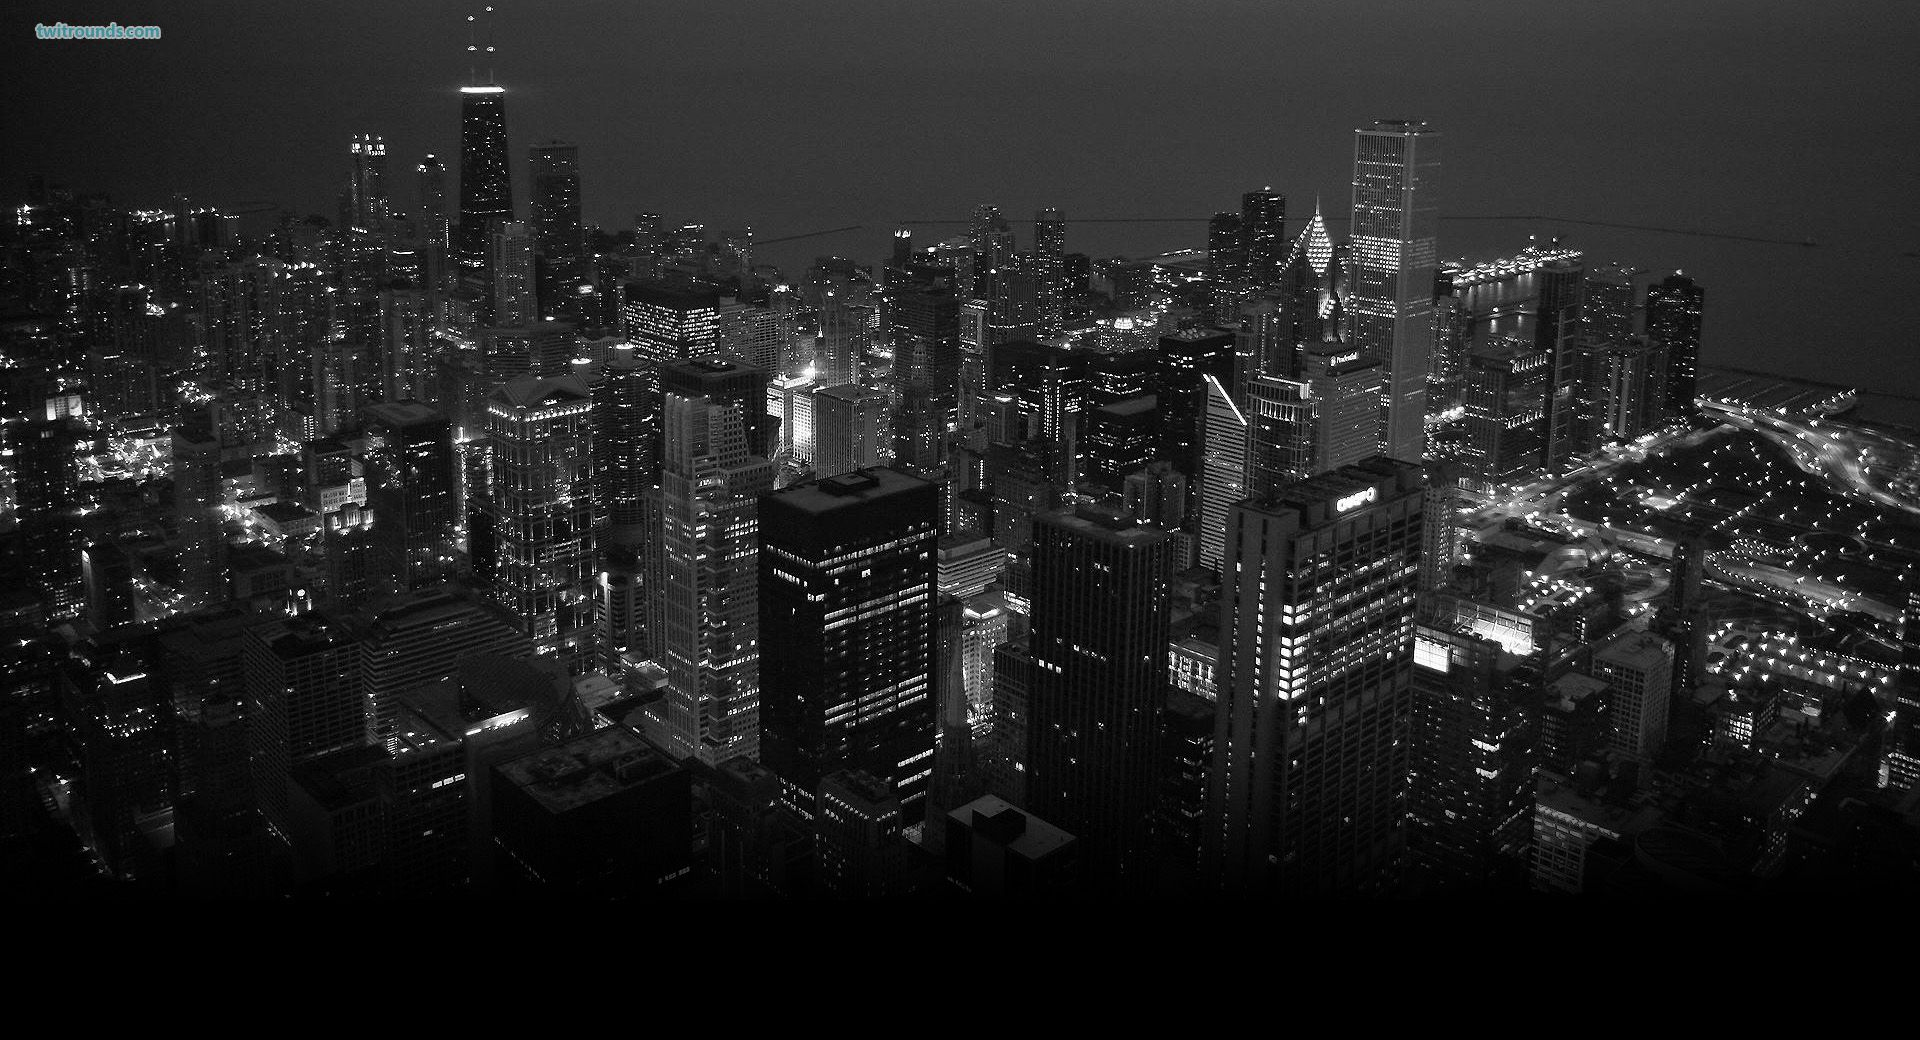 Chicaggo Black And White Wallpaper Chicago Wallpaper City Wallpaper